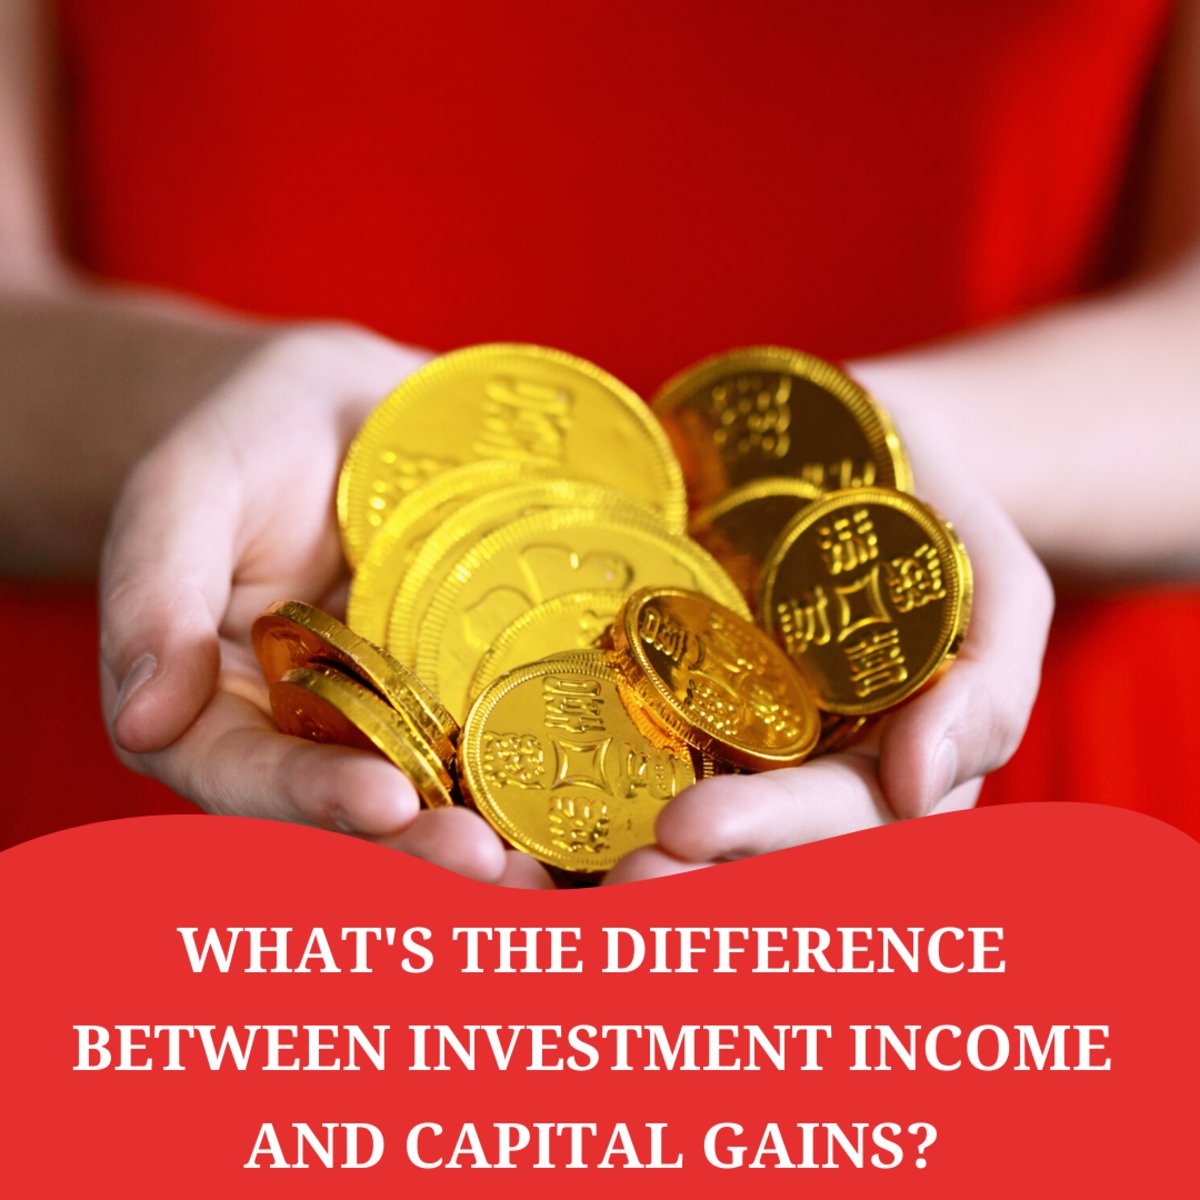 Read on to learn the difference between investment income and capital gains?